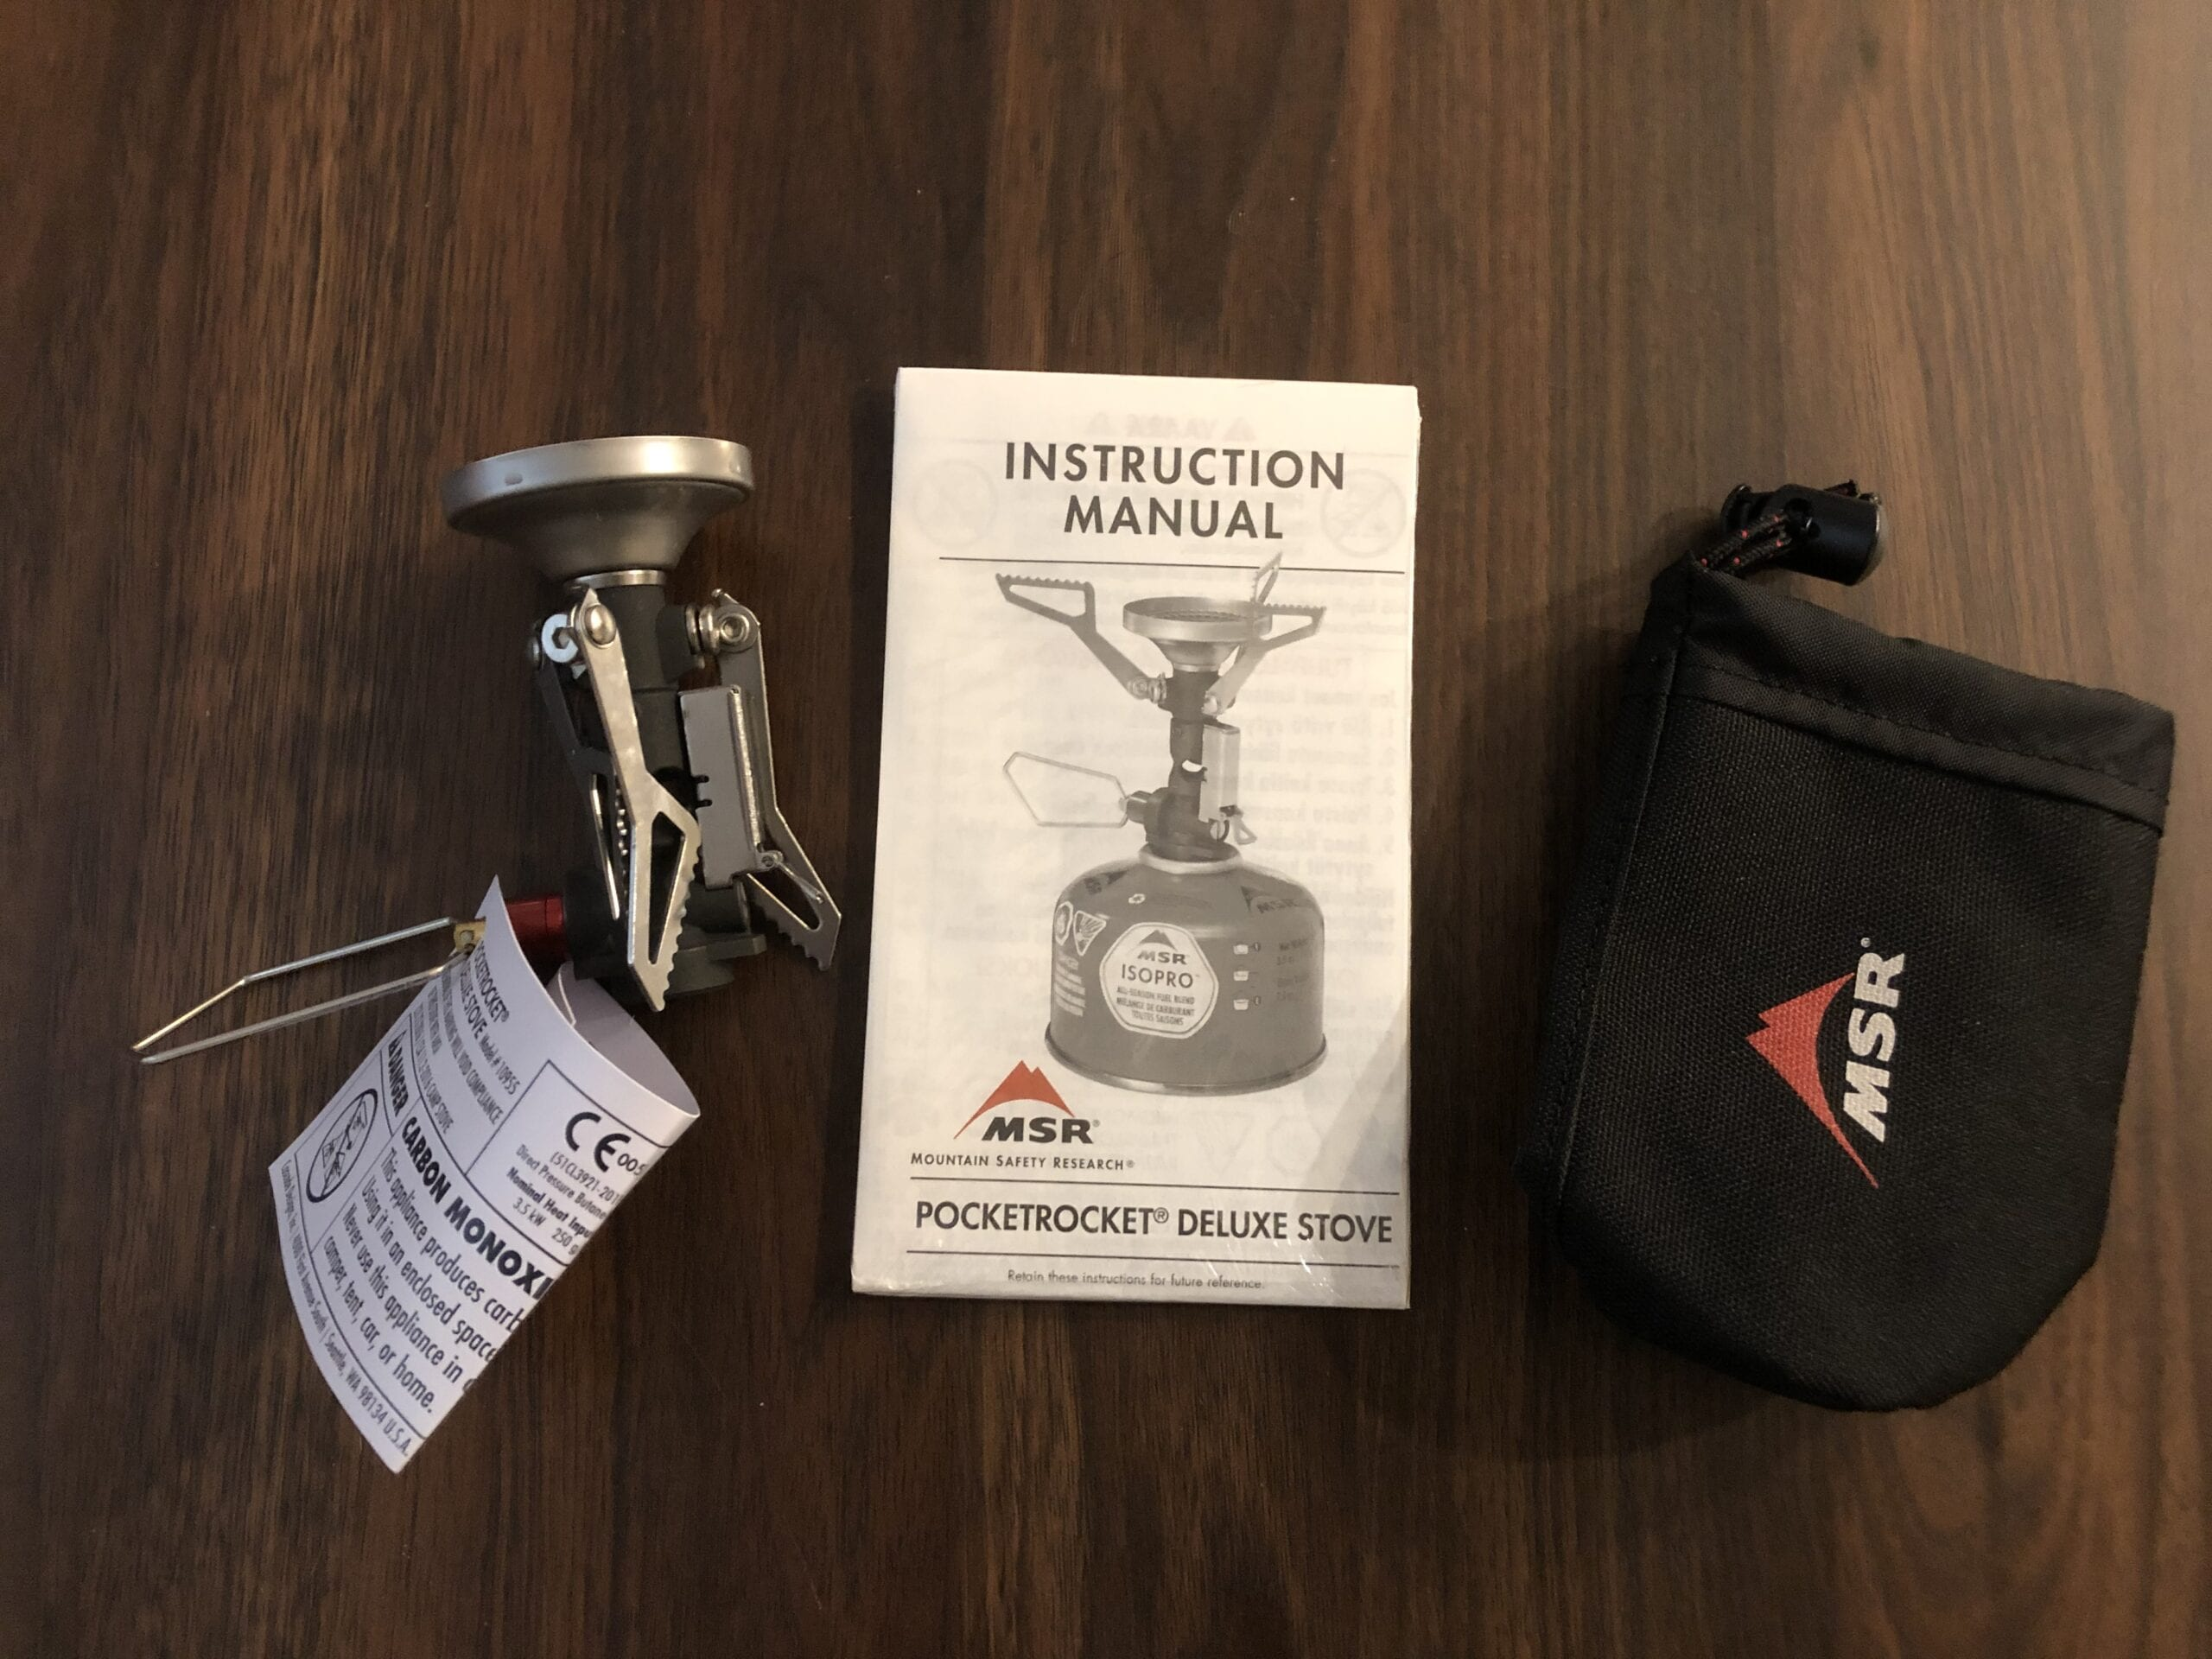 The MSR PocketRocket Deluxe stove with it's case and instructions.